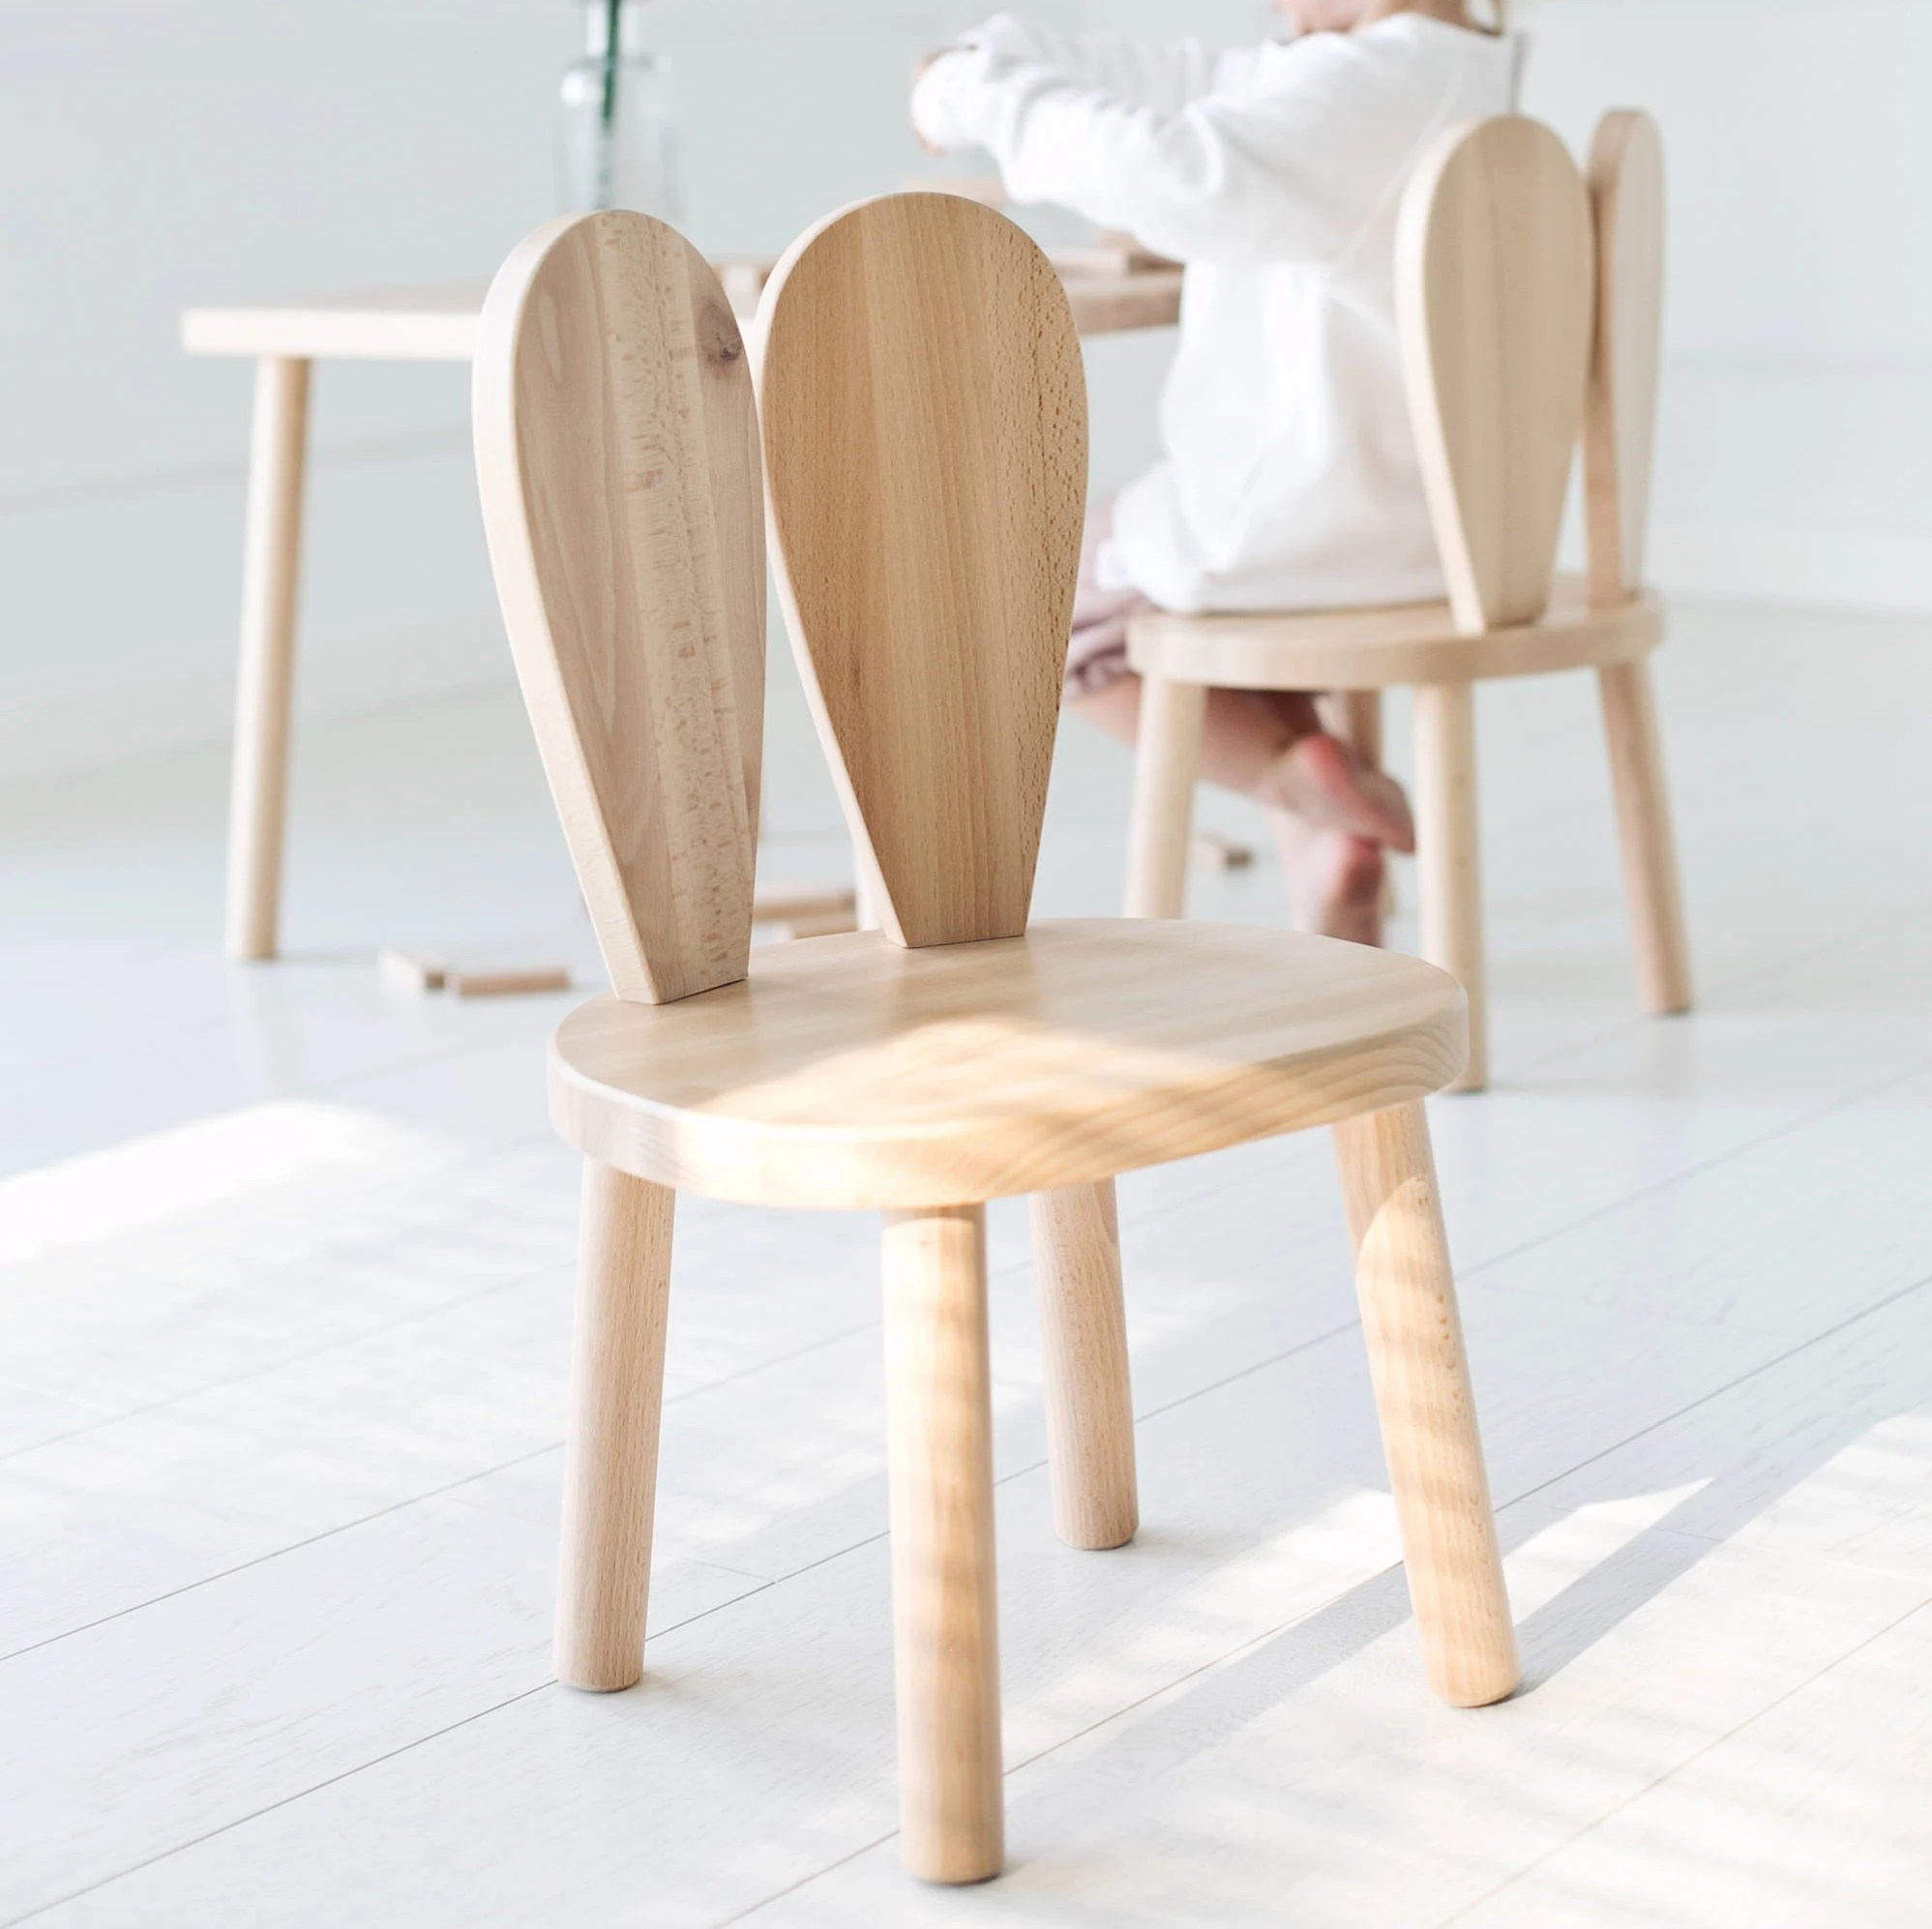 wooden youth chair posture office chairs review kids bunny natural littlenomad